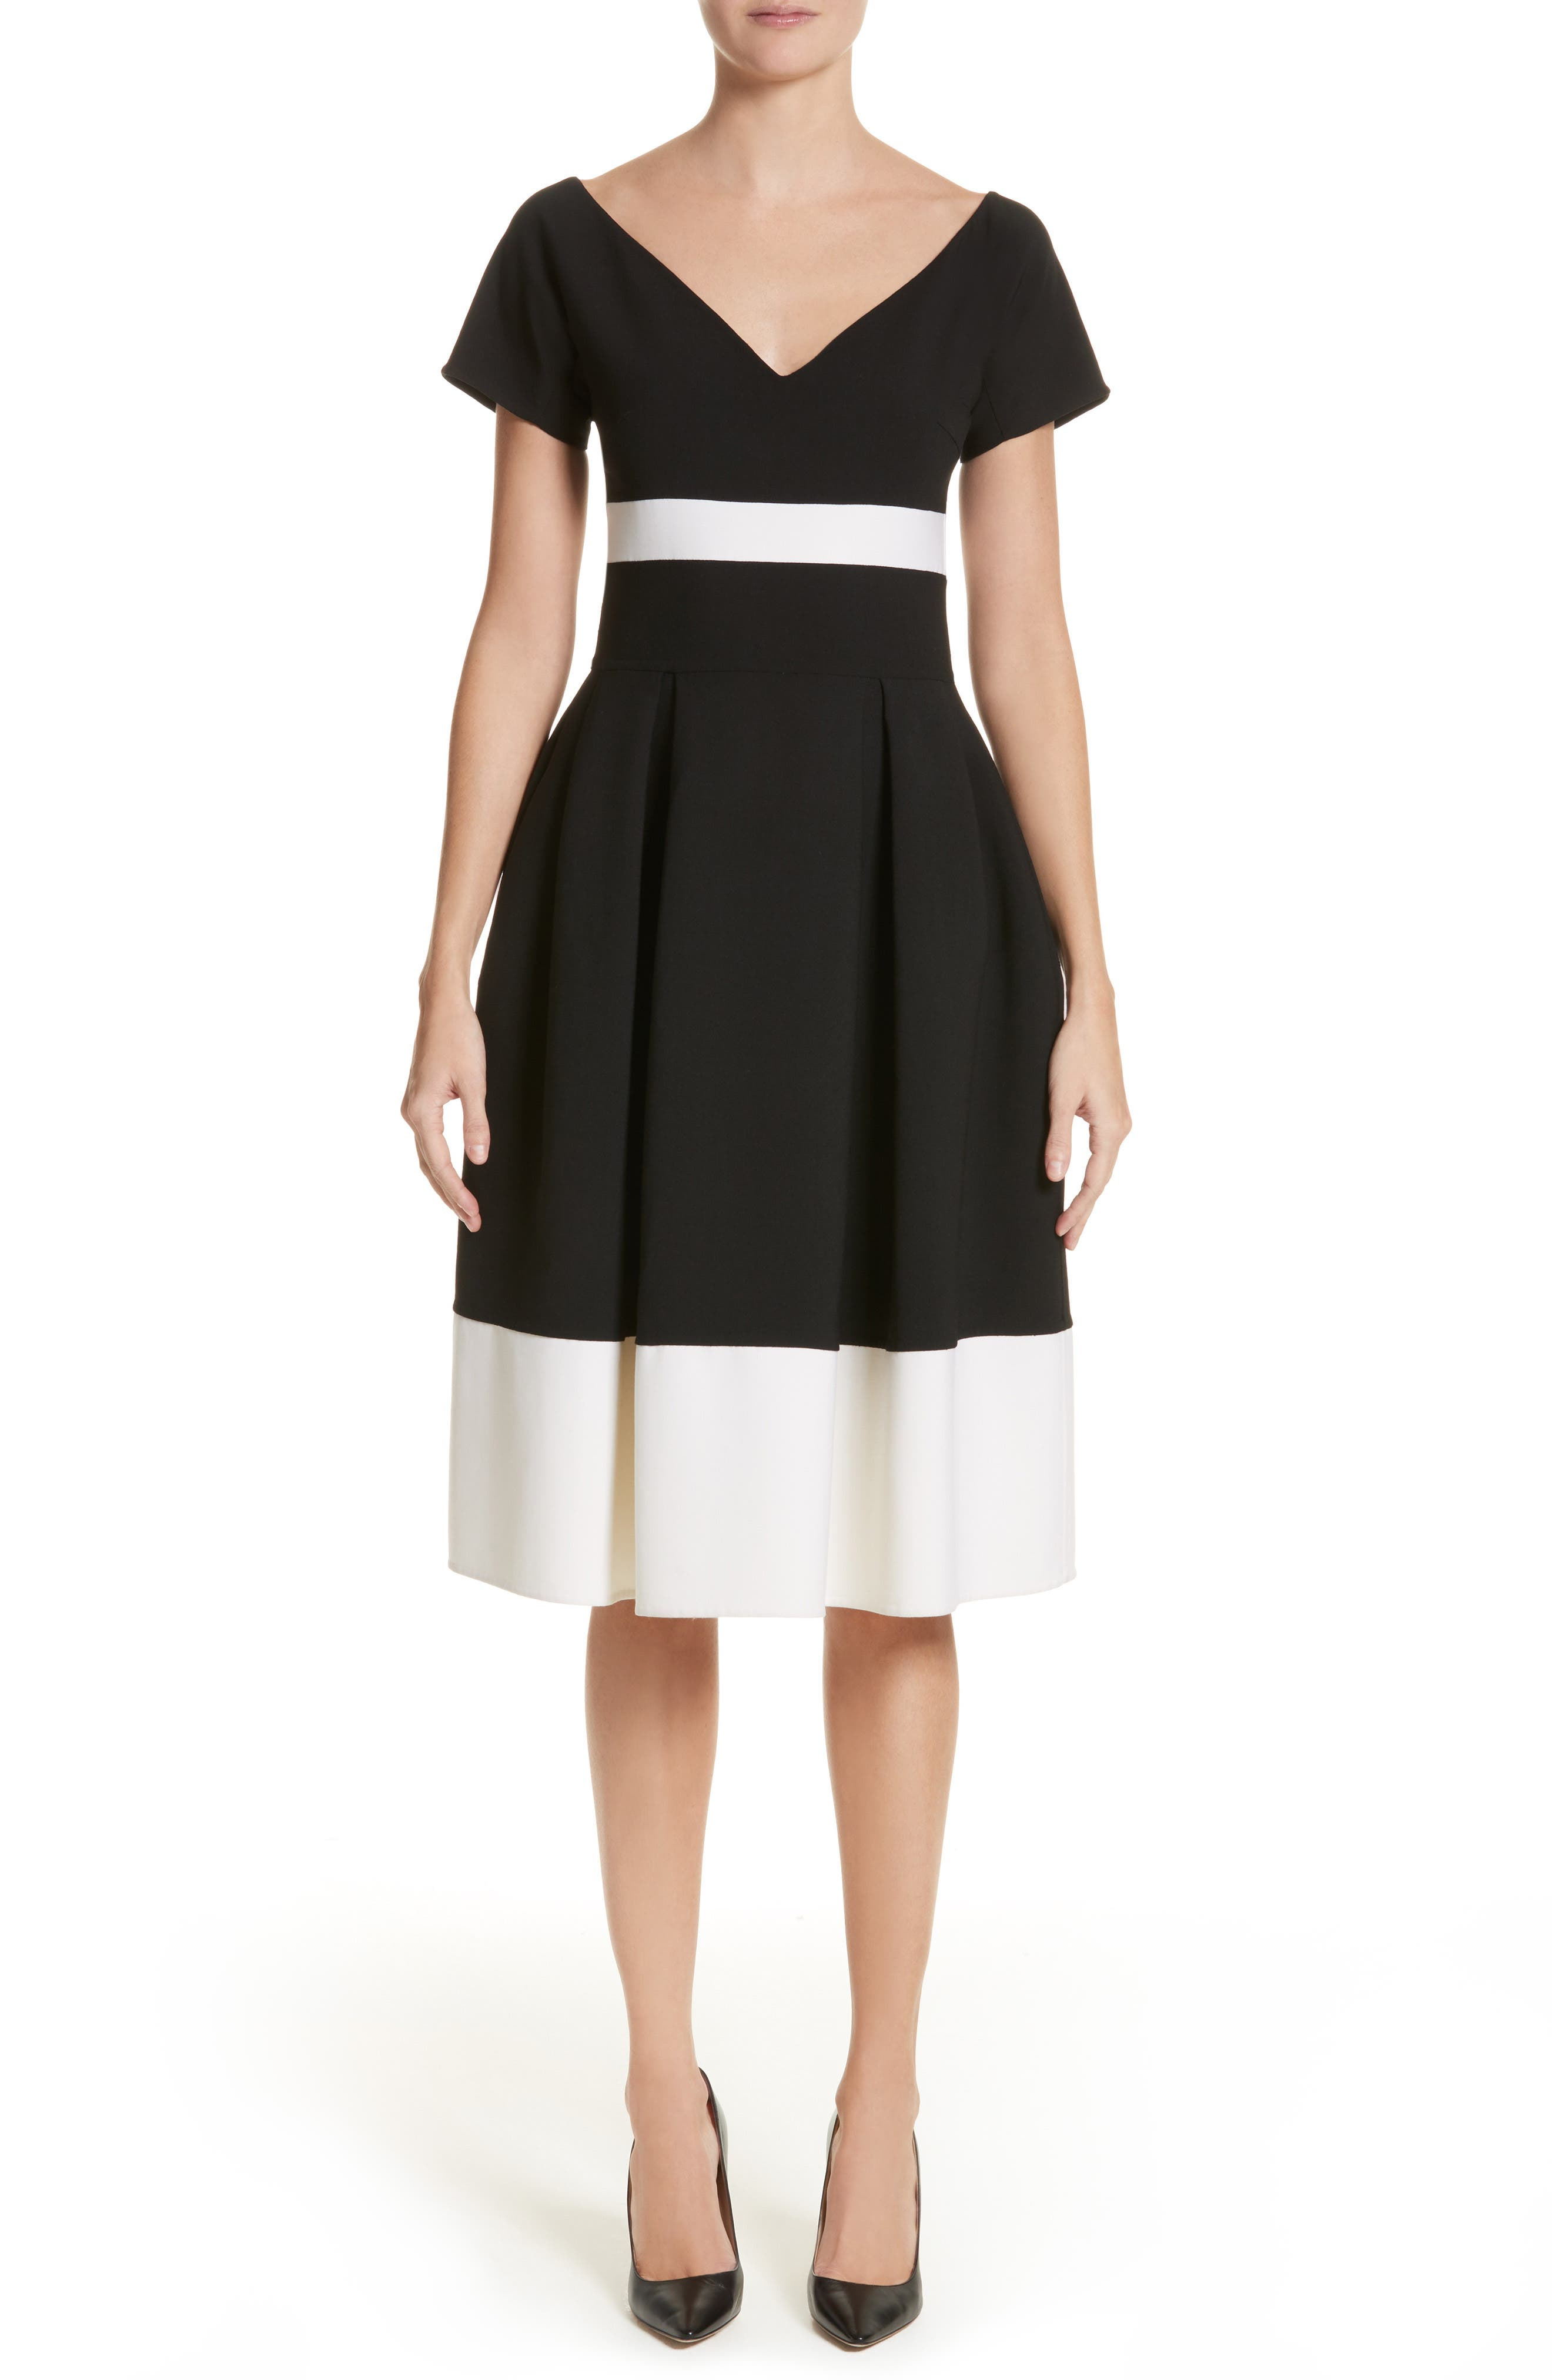 Carolina Herrera Colorblock Cap Sleeve Dress